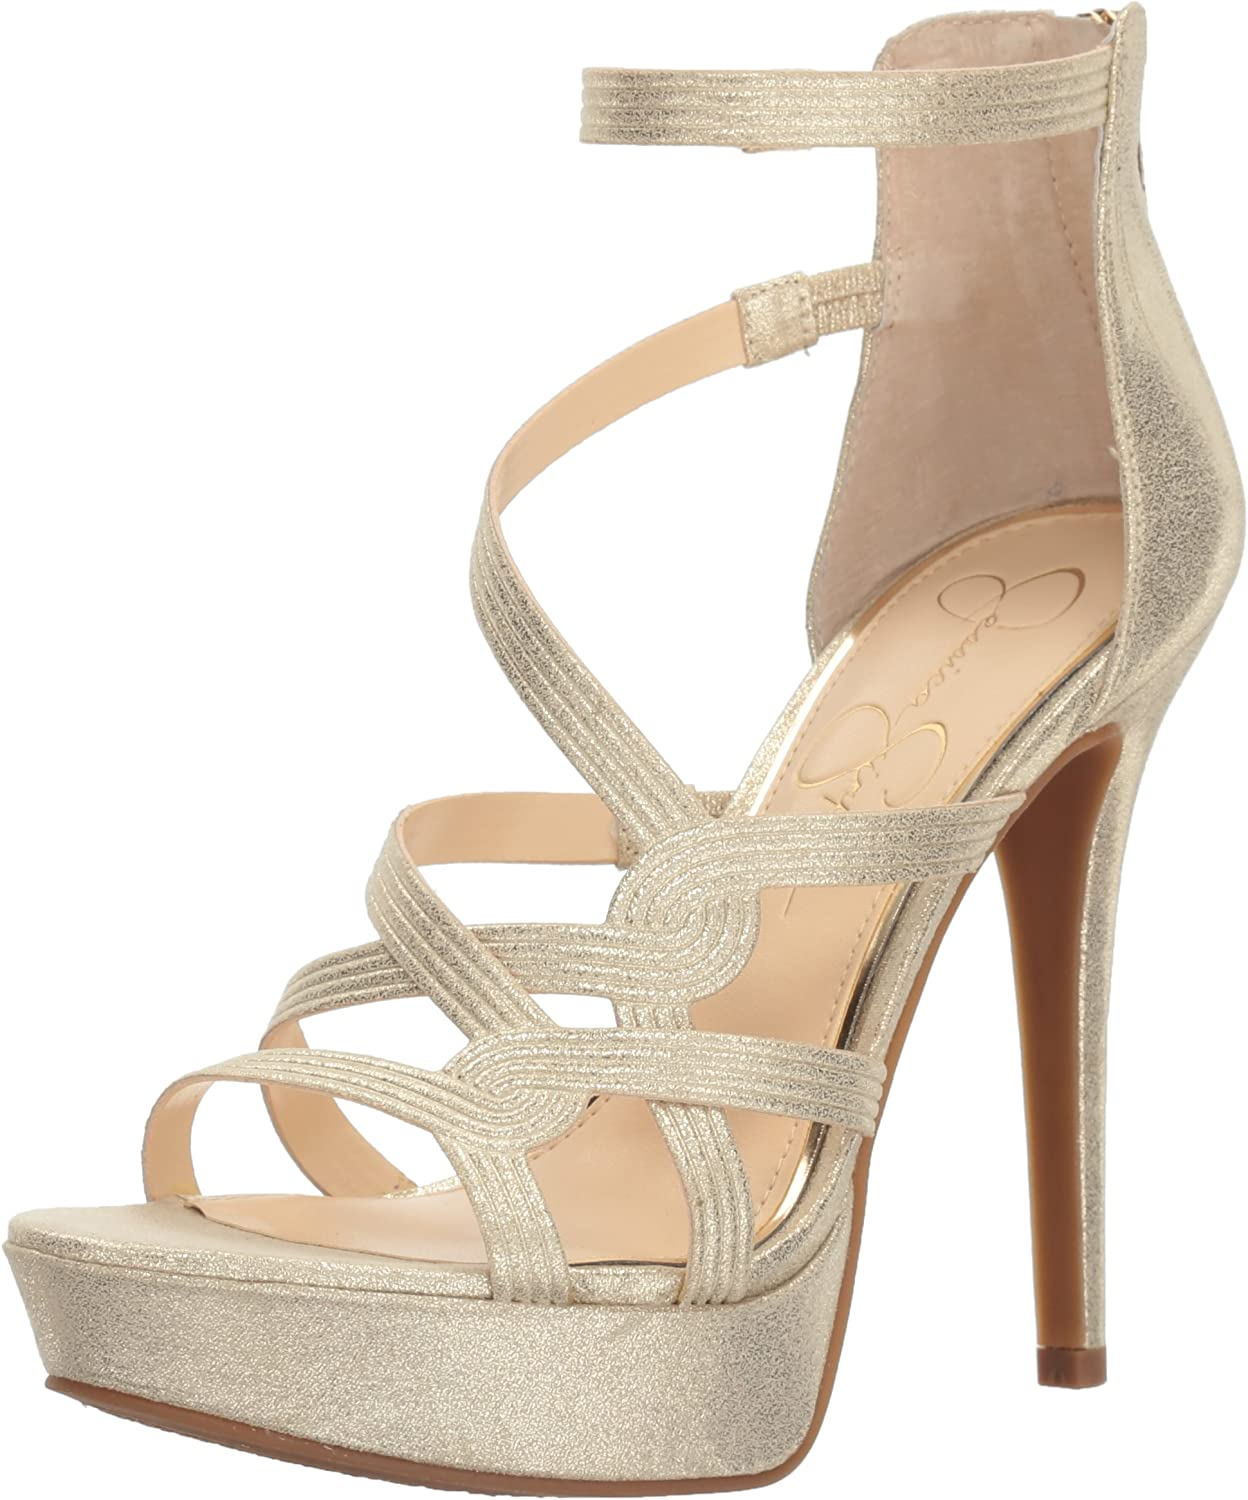 Jessica Simpson Womens Bellanne Heeled Sandal